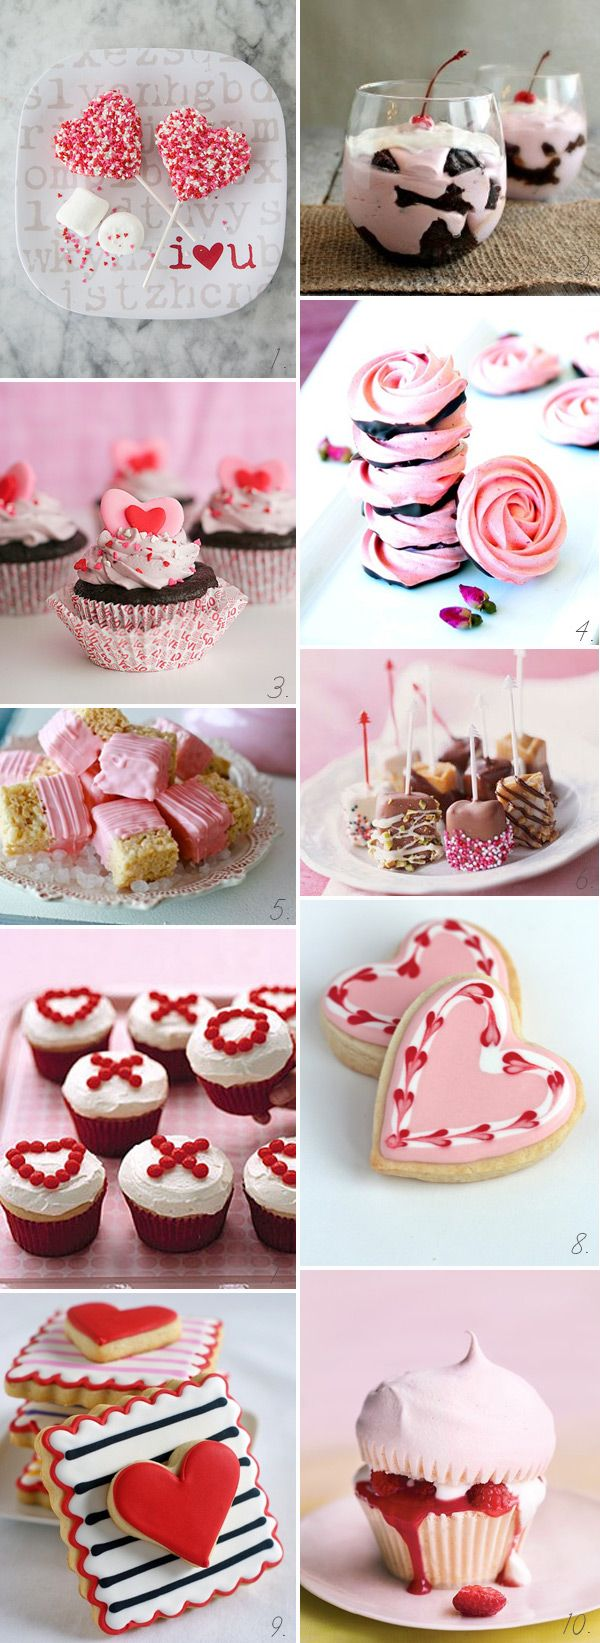 Yummy Sweets and Treats – Valentine's Day Goodies |